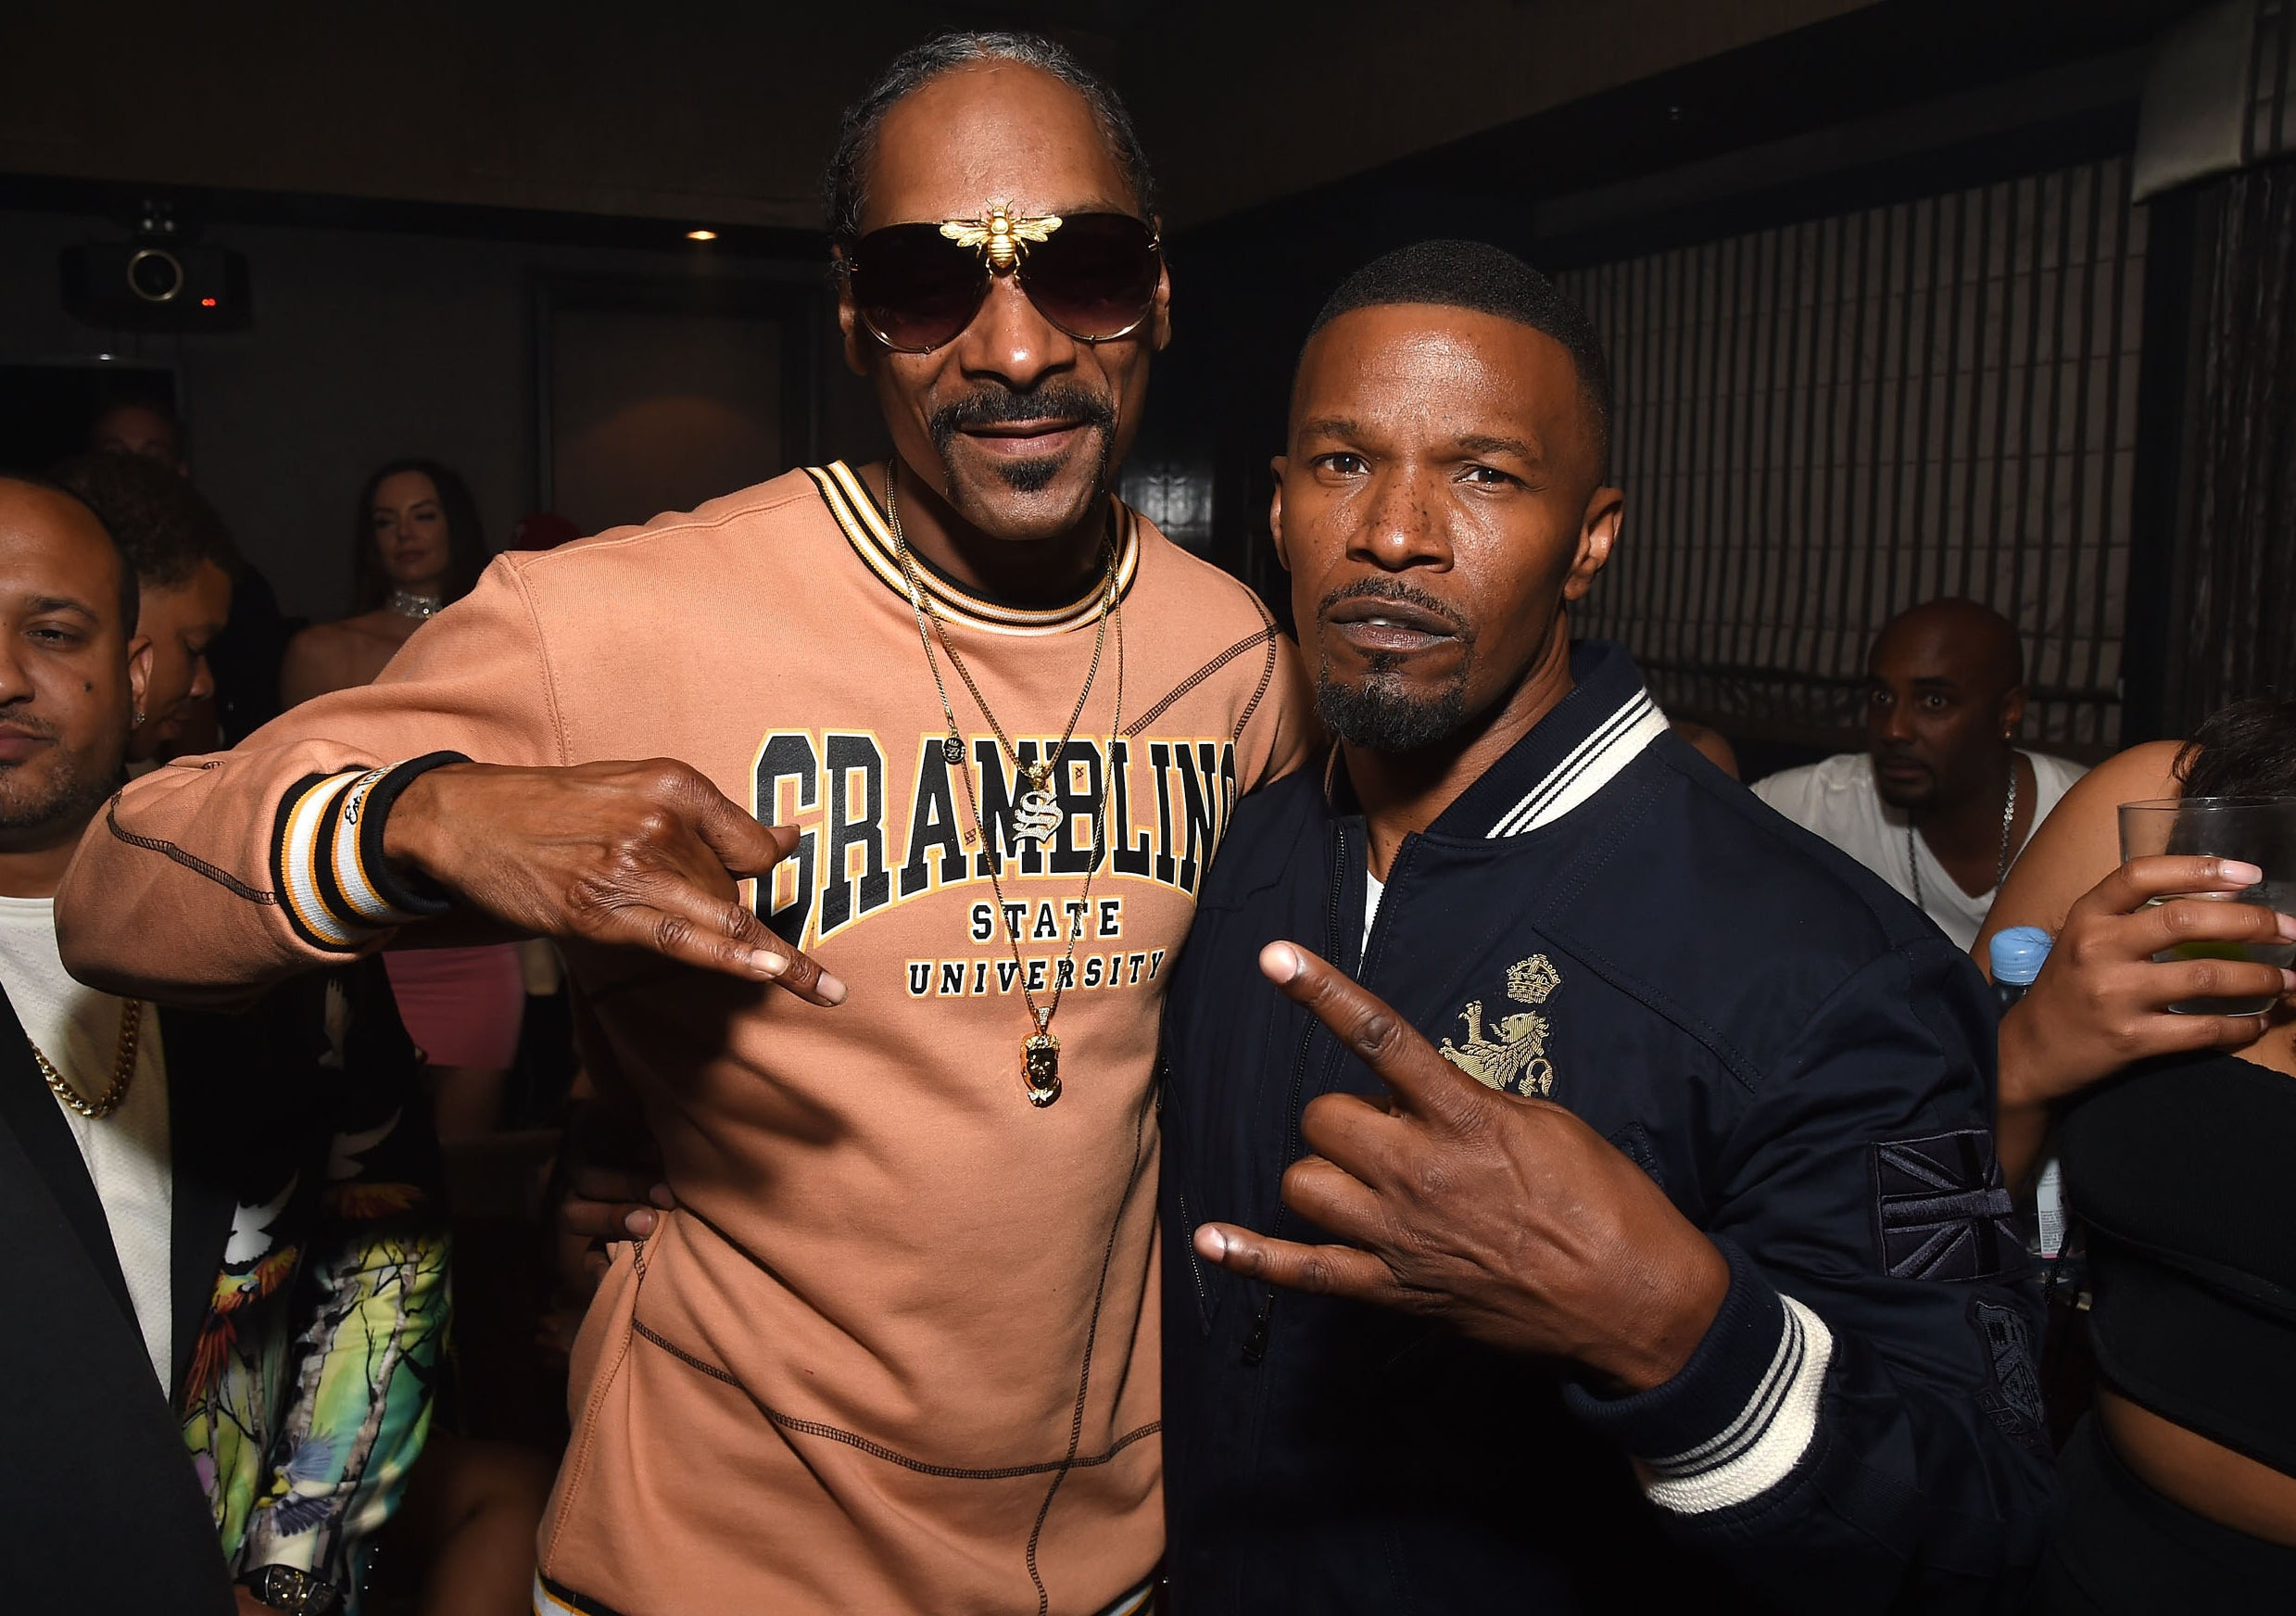 Jamie and Snoop pose together